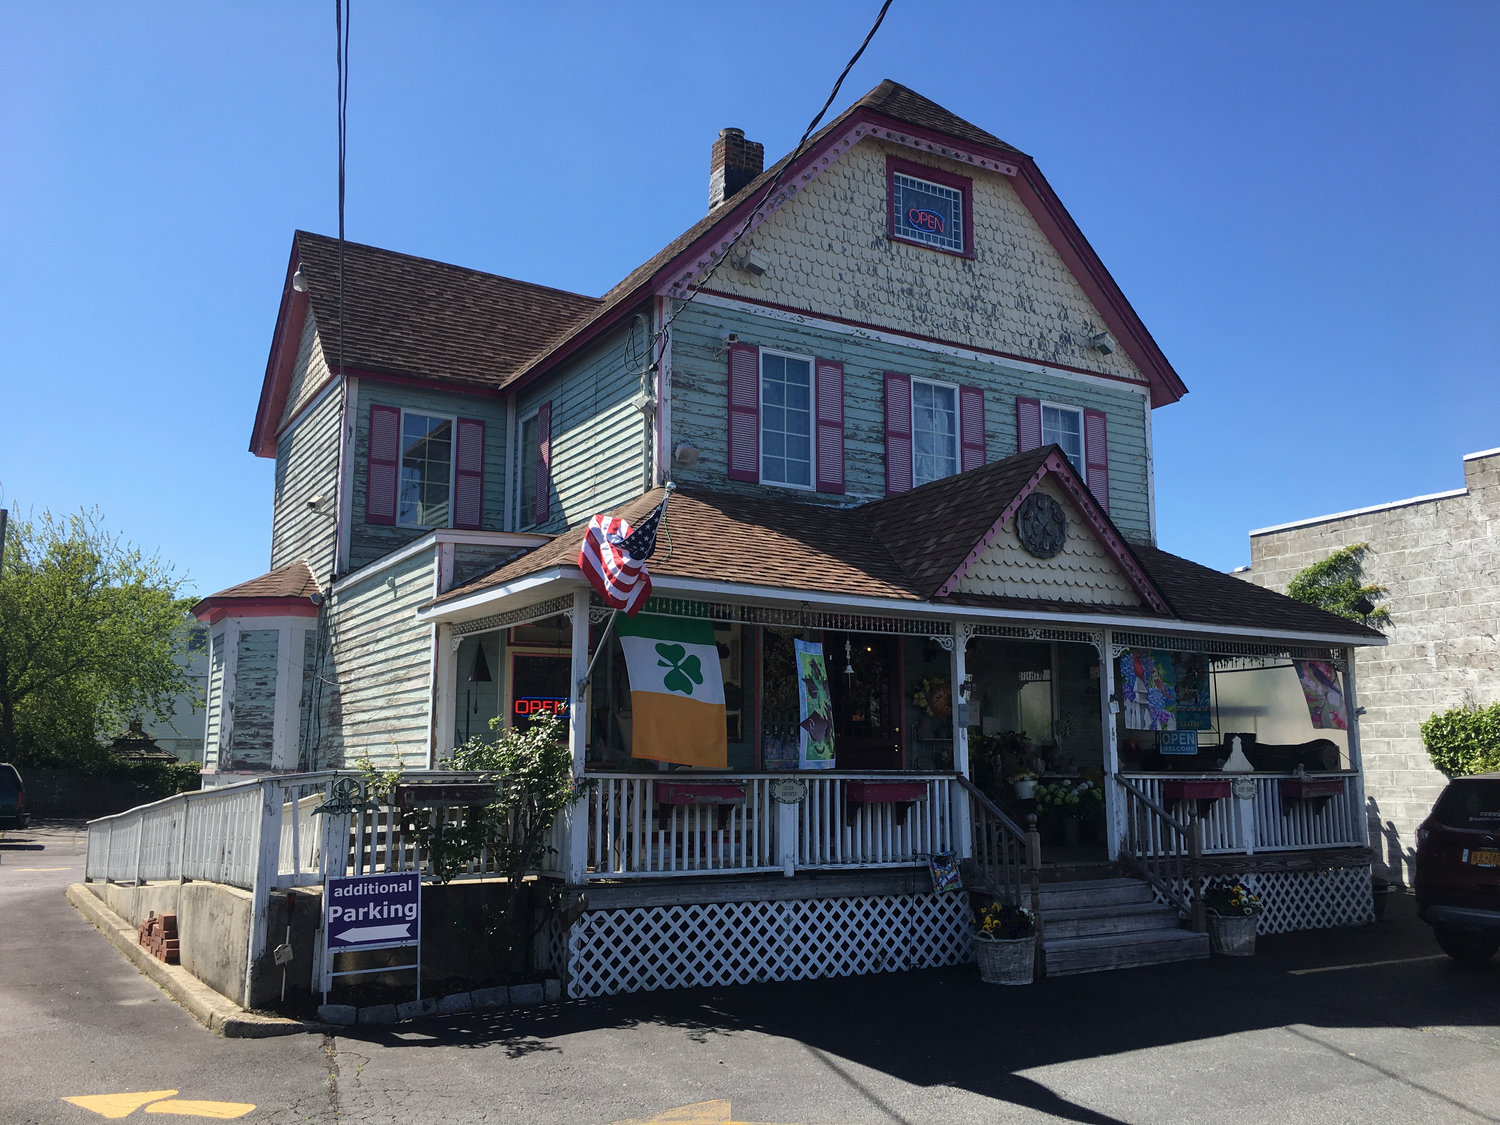 The Olde Towne Garden, a shop on Wantagh Avenue, has been around for 25 years.